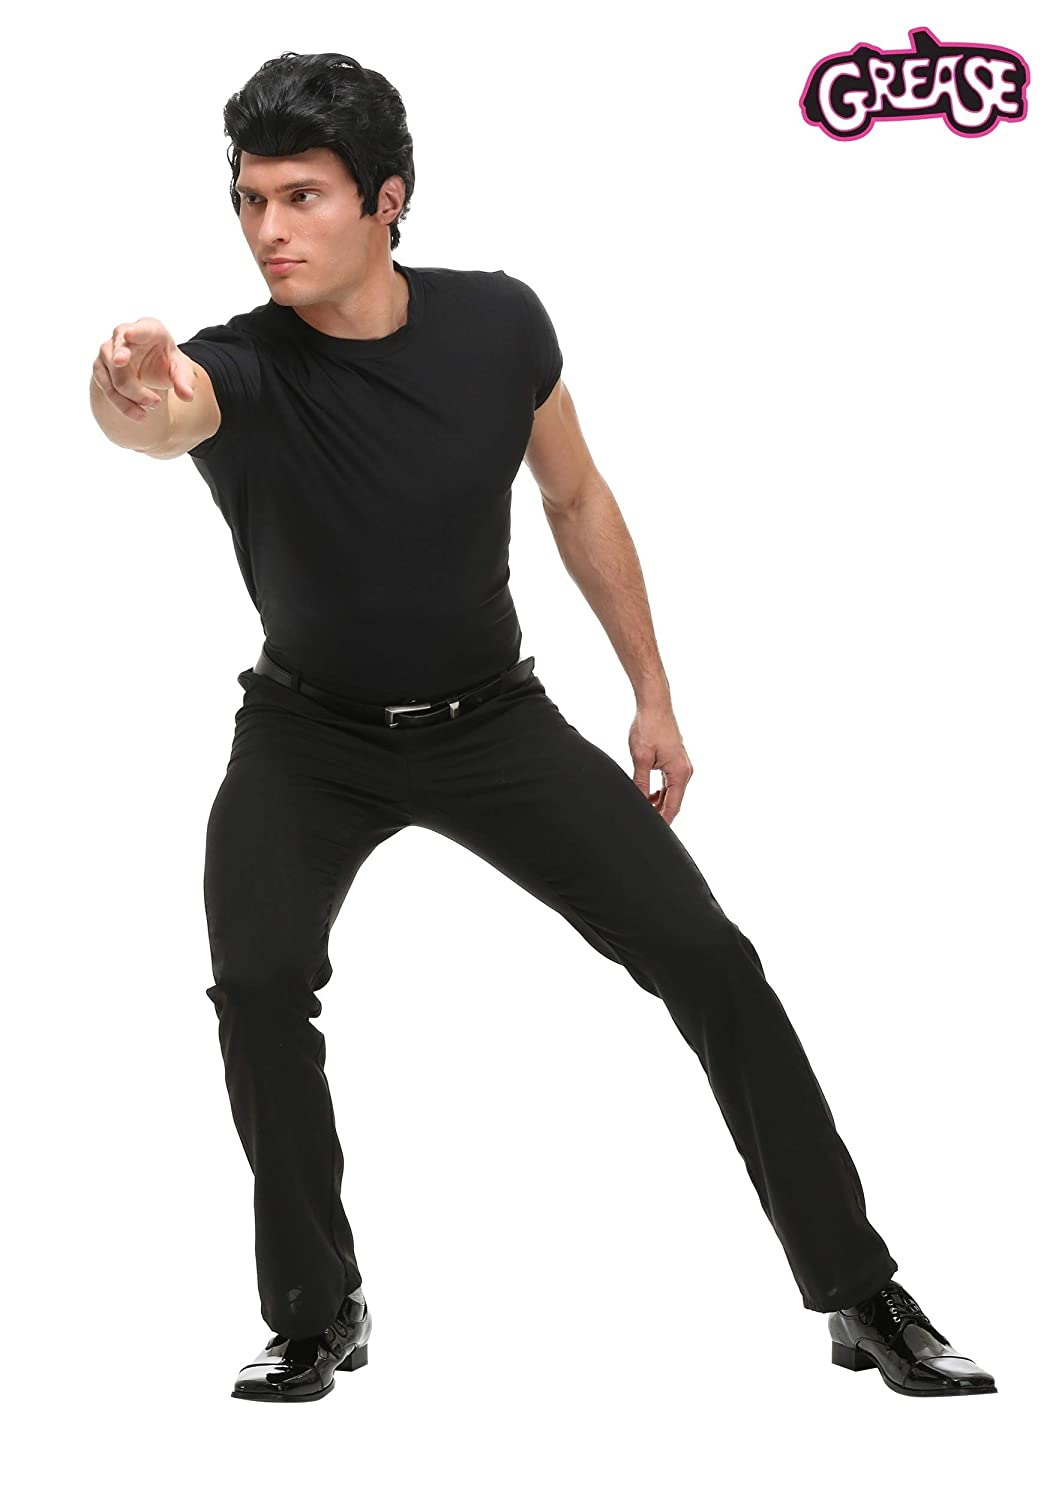 Grease Danny Fancy dress costume Medium: Amazon.es: Juguetes y juegos